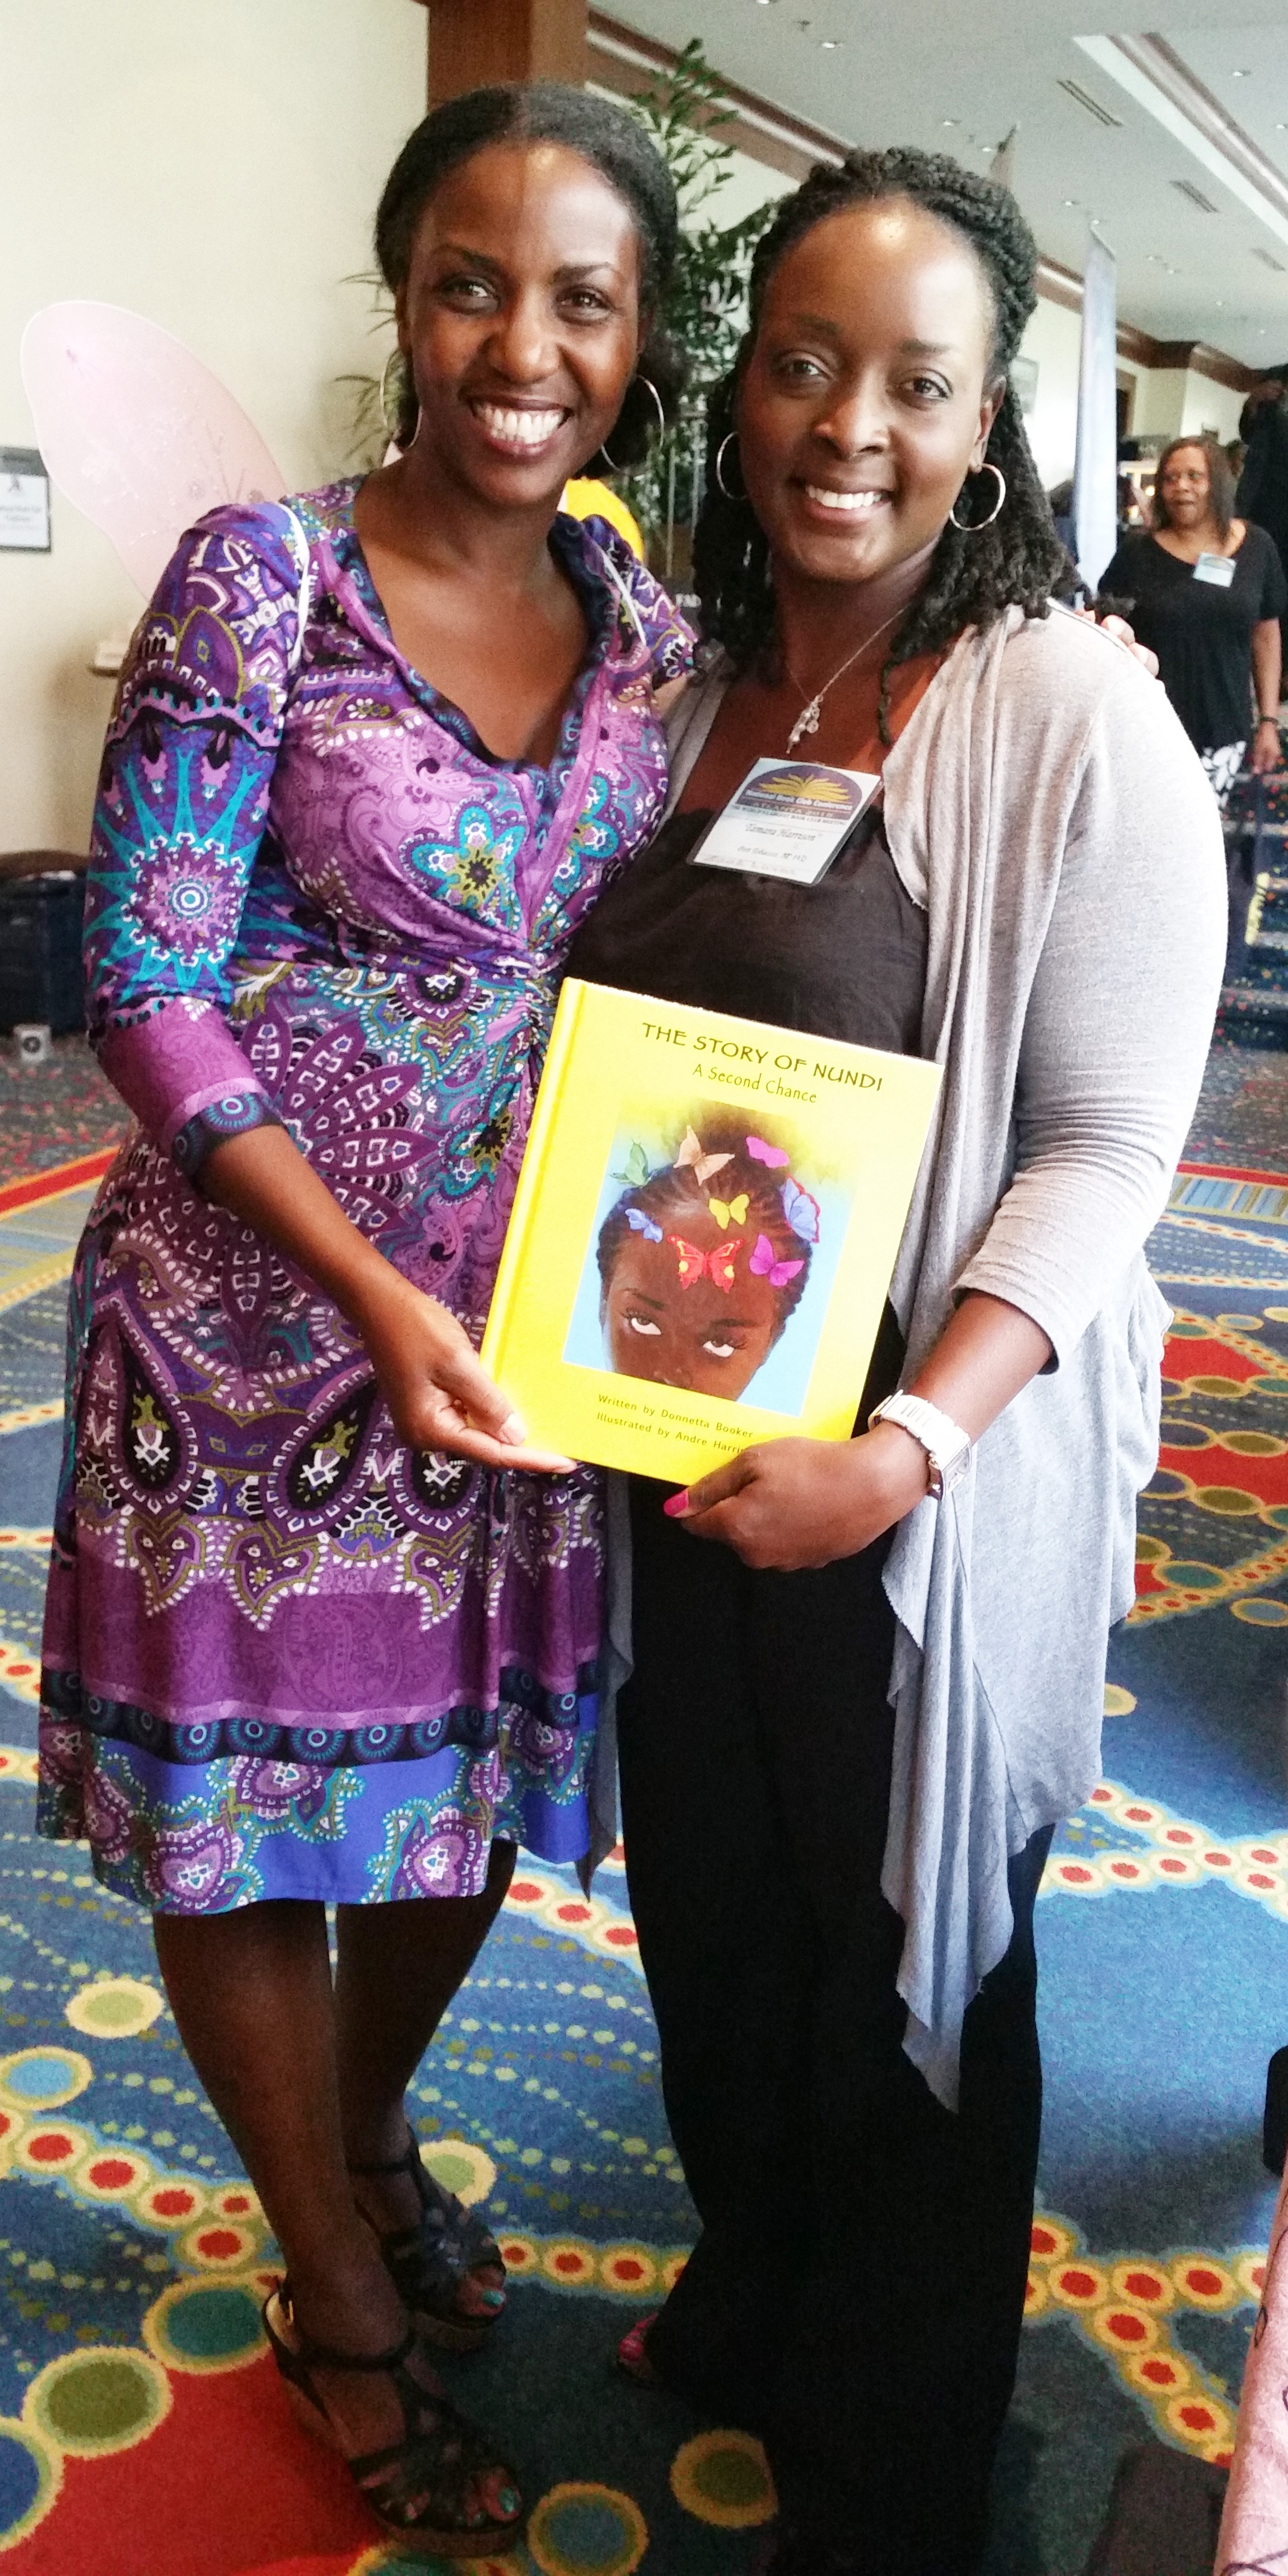 """She saw Nundi and had to buy the book because, """"She looks just like my daughter."""" <3"""